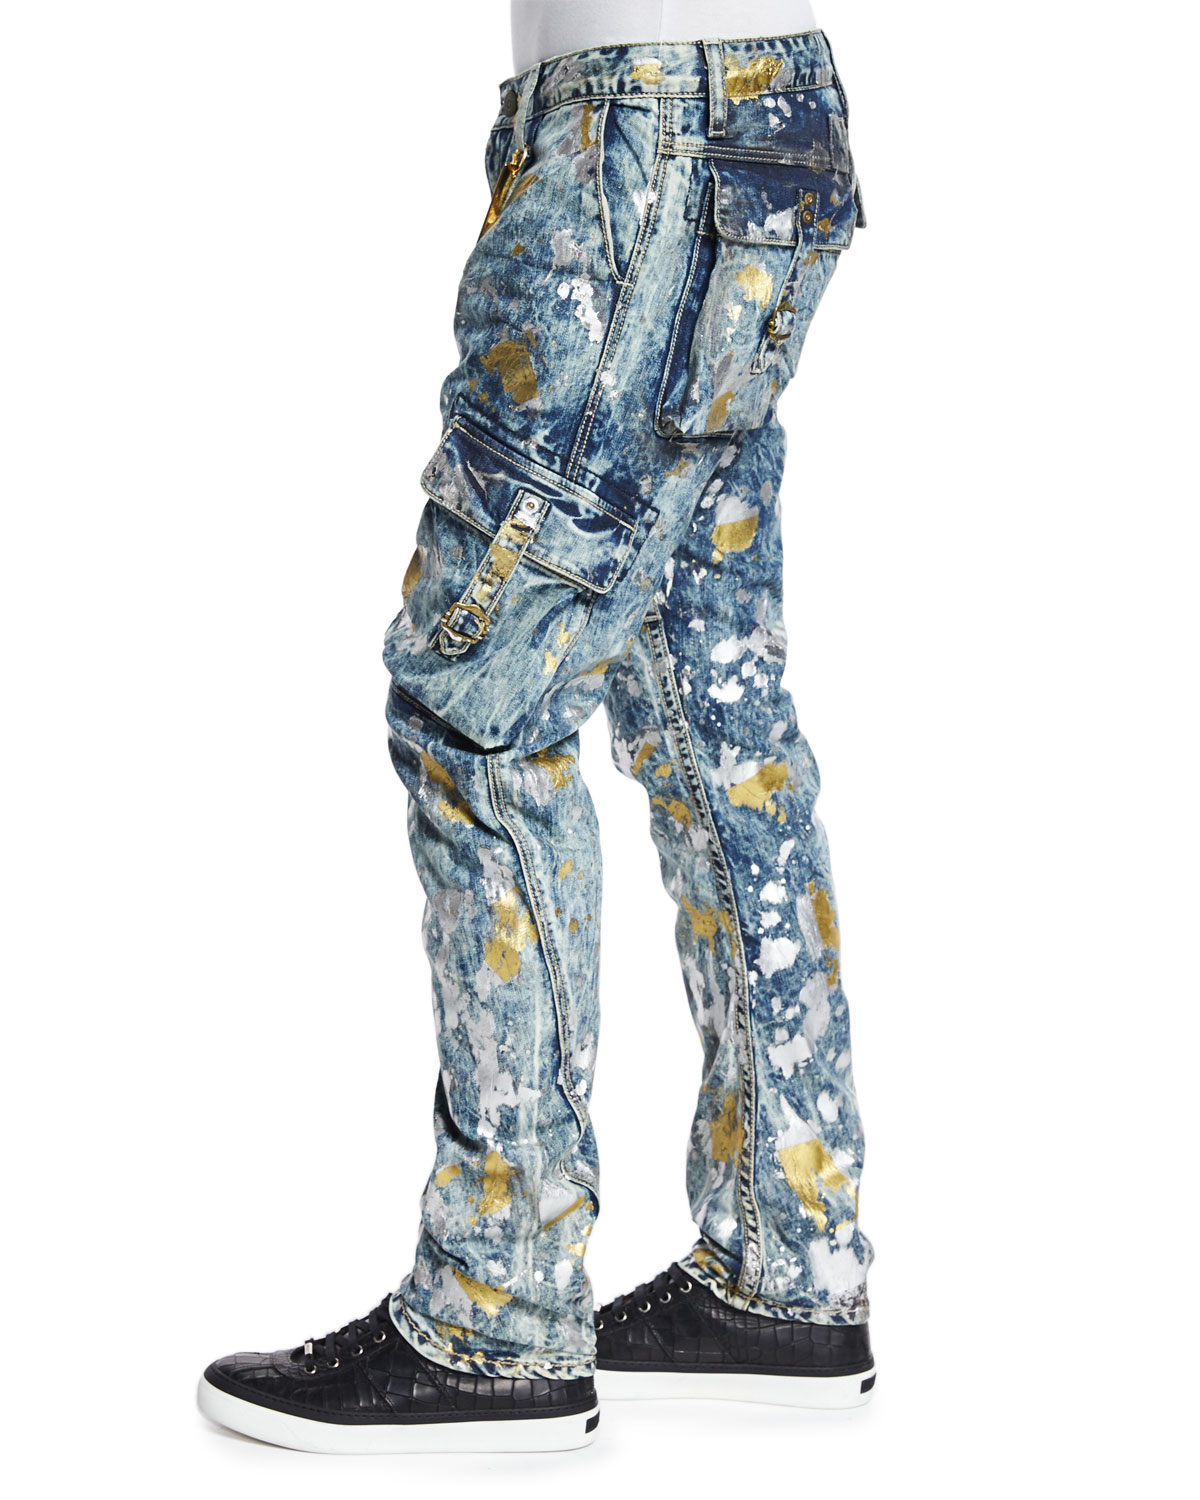 Lyst Robin S Jean Paint Splatter Cargo Denim Jeans In